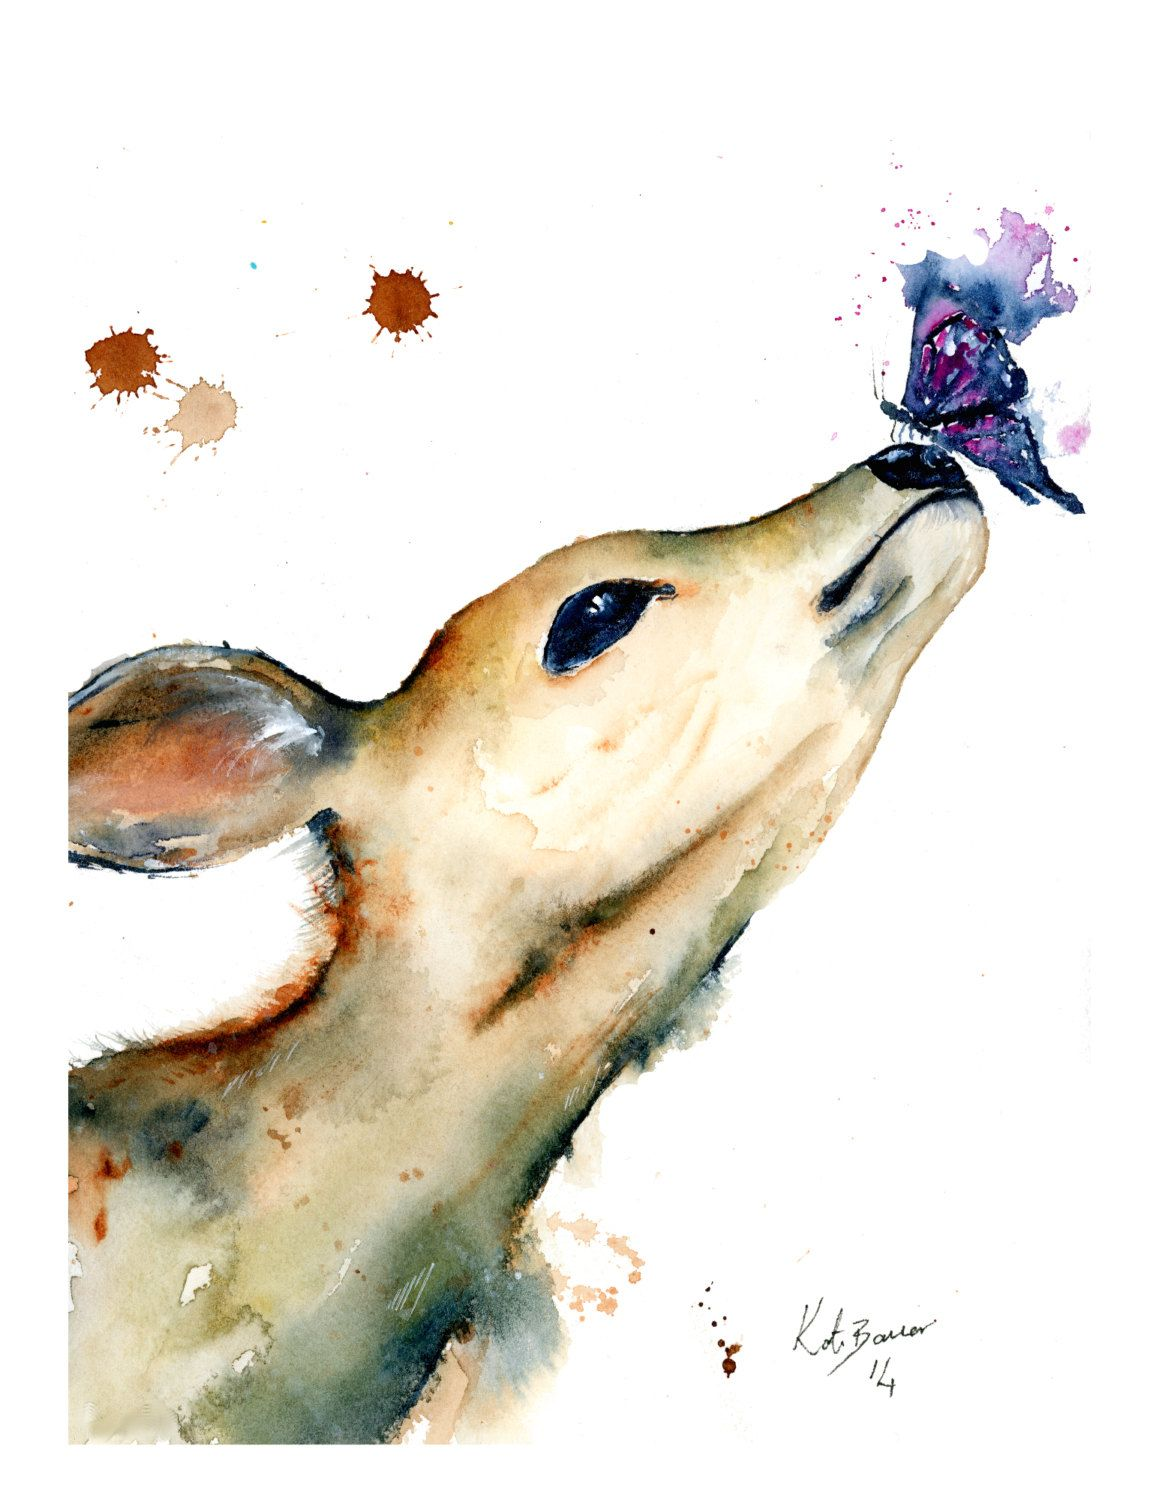 Watercolor books for sale -  Deer Friend By Artist Kate Bauer Watercolor Illustration For Sale As Print